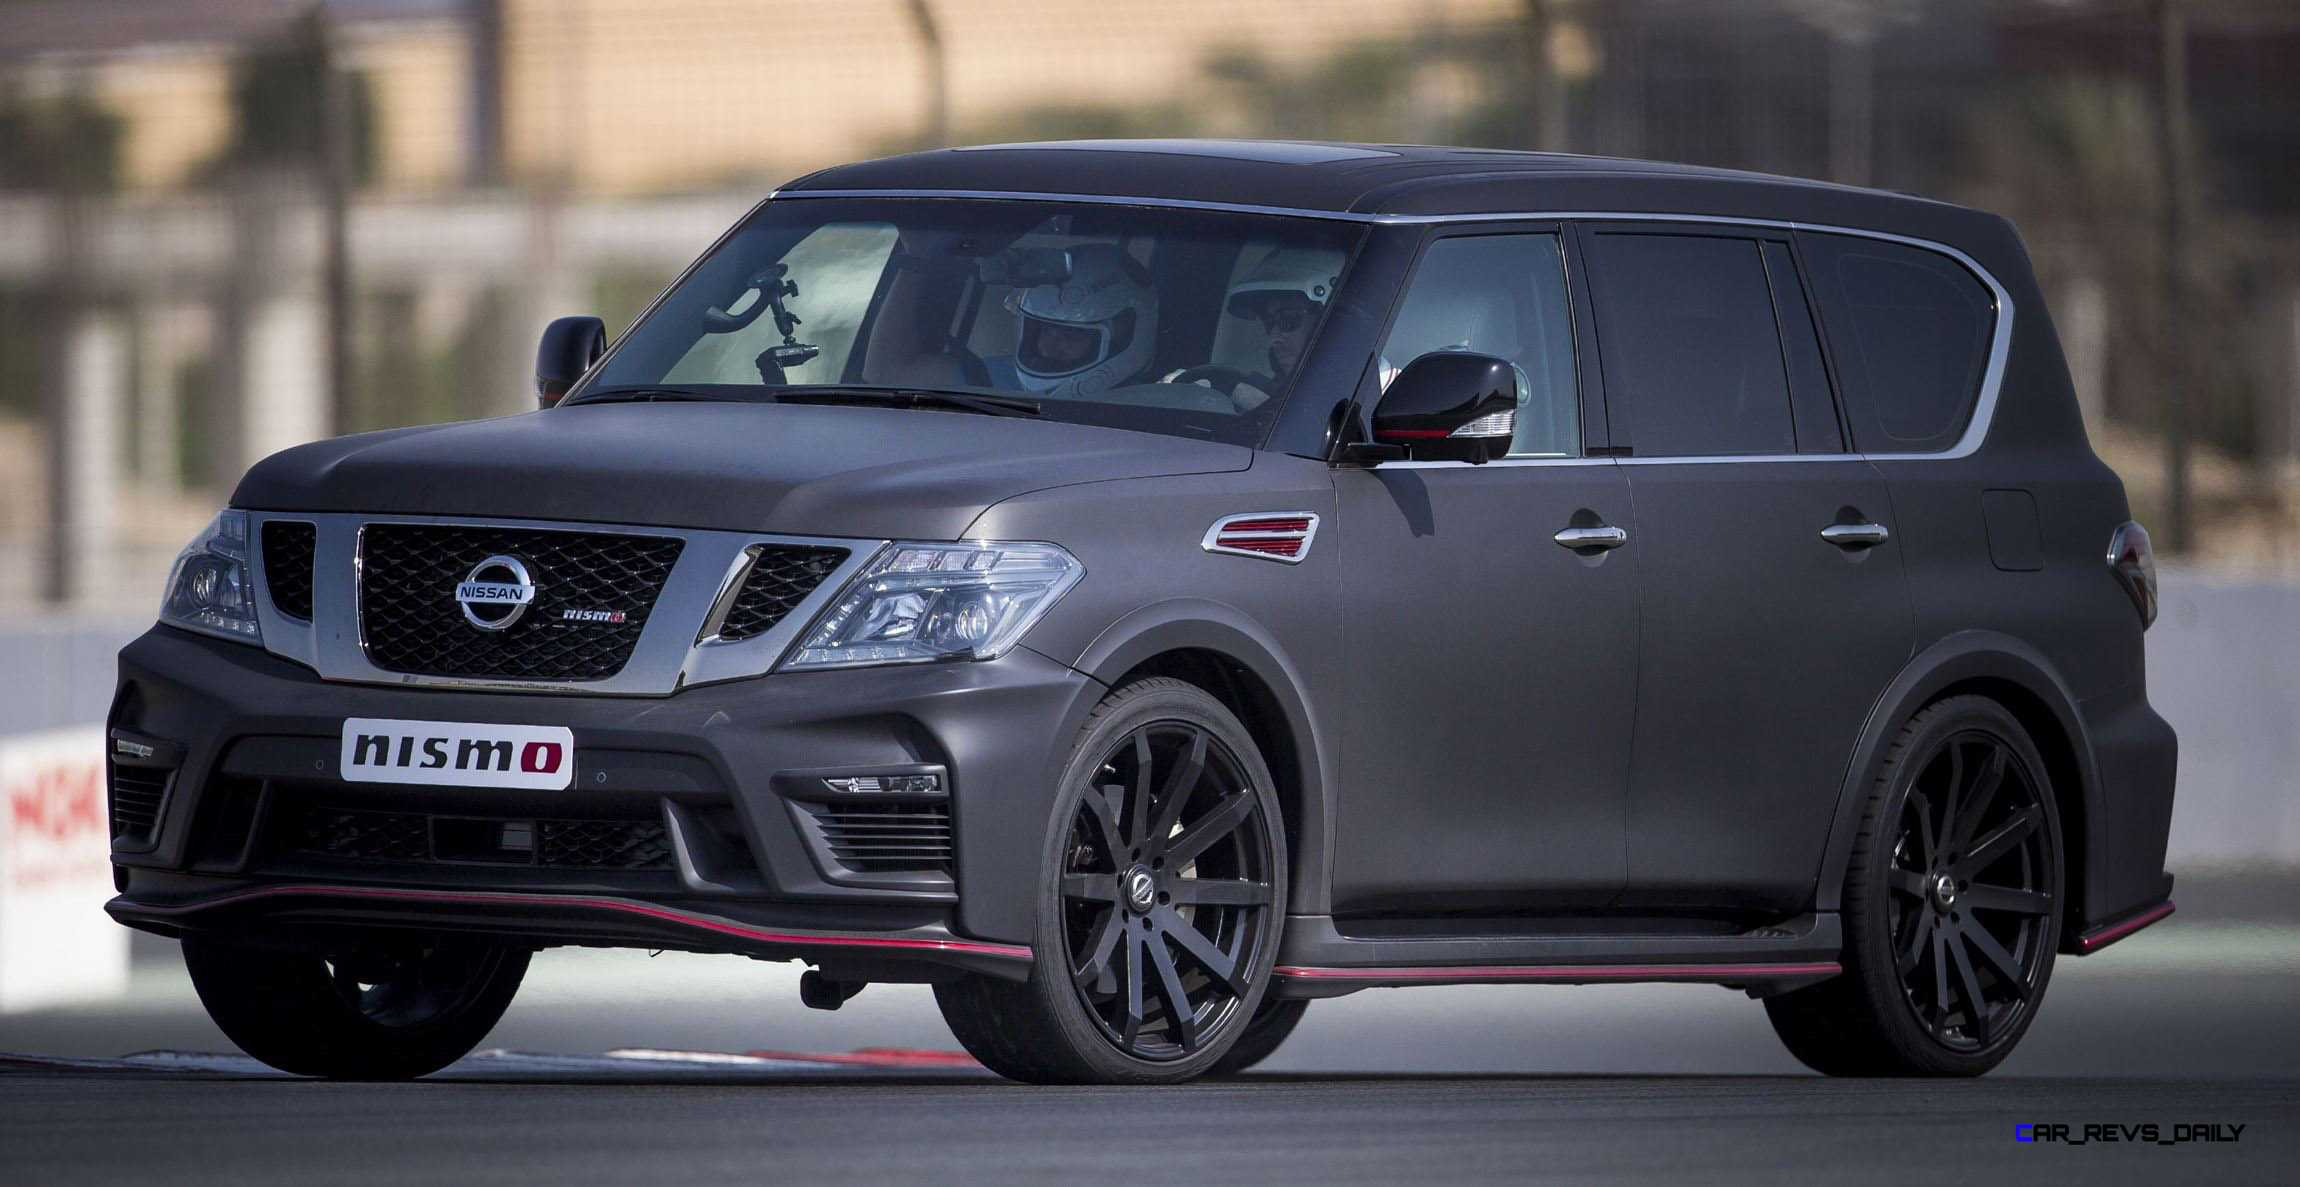 Patrol Nismo >> 2016 Nissan patrol | Car Photos Catalog 2017